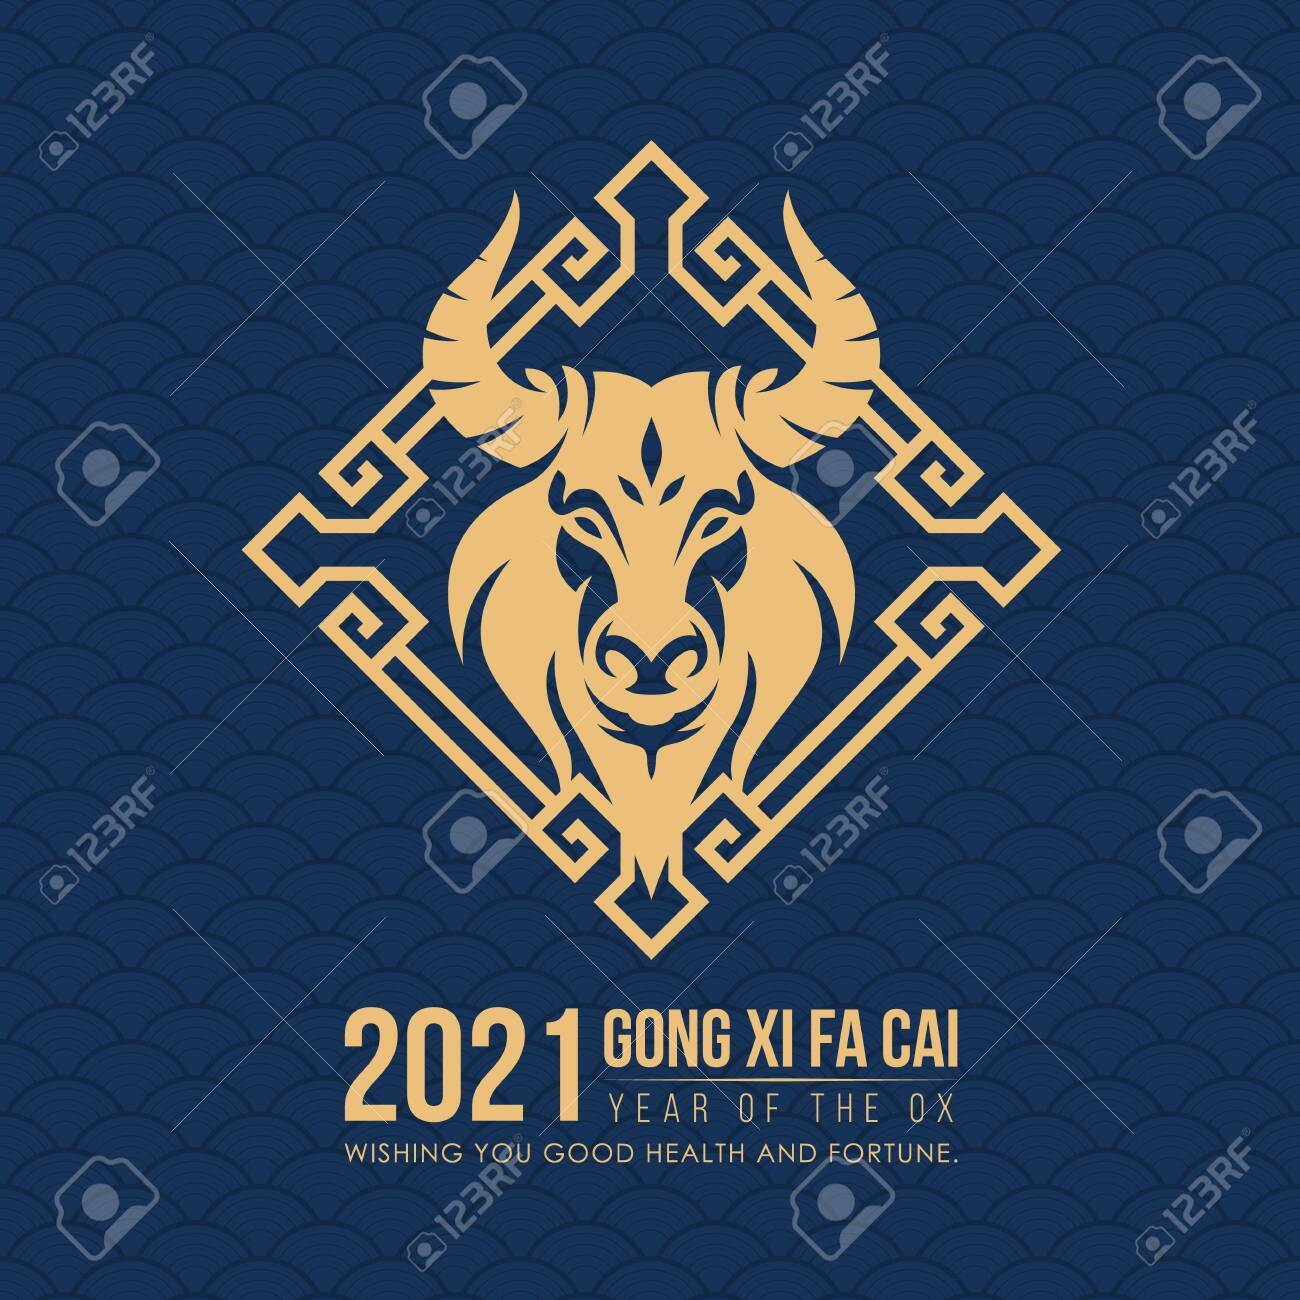 Happy chinese new year 2021 with gold head ox zodiac sign in china frame on dark blue chinese texture background vector design - 152407524